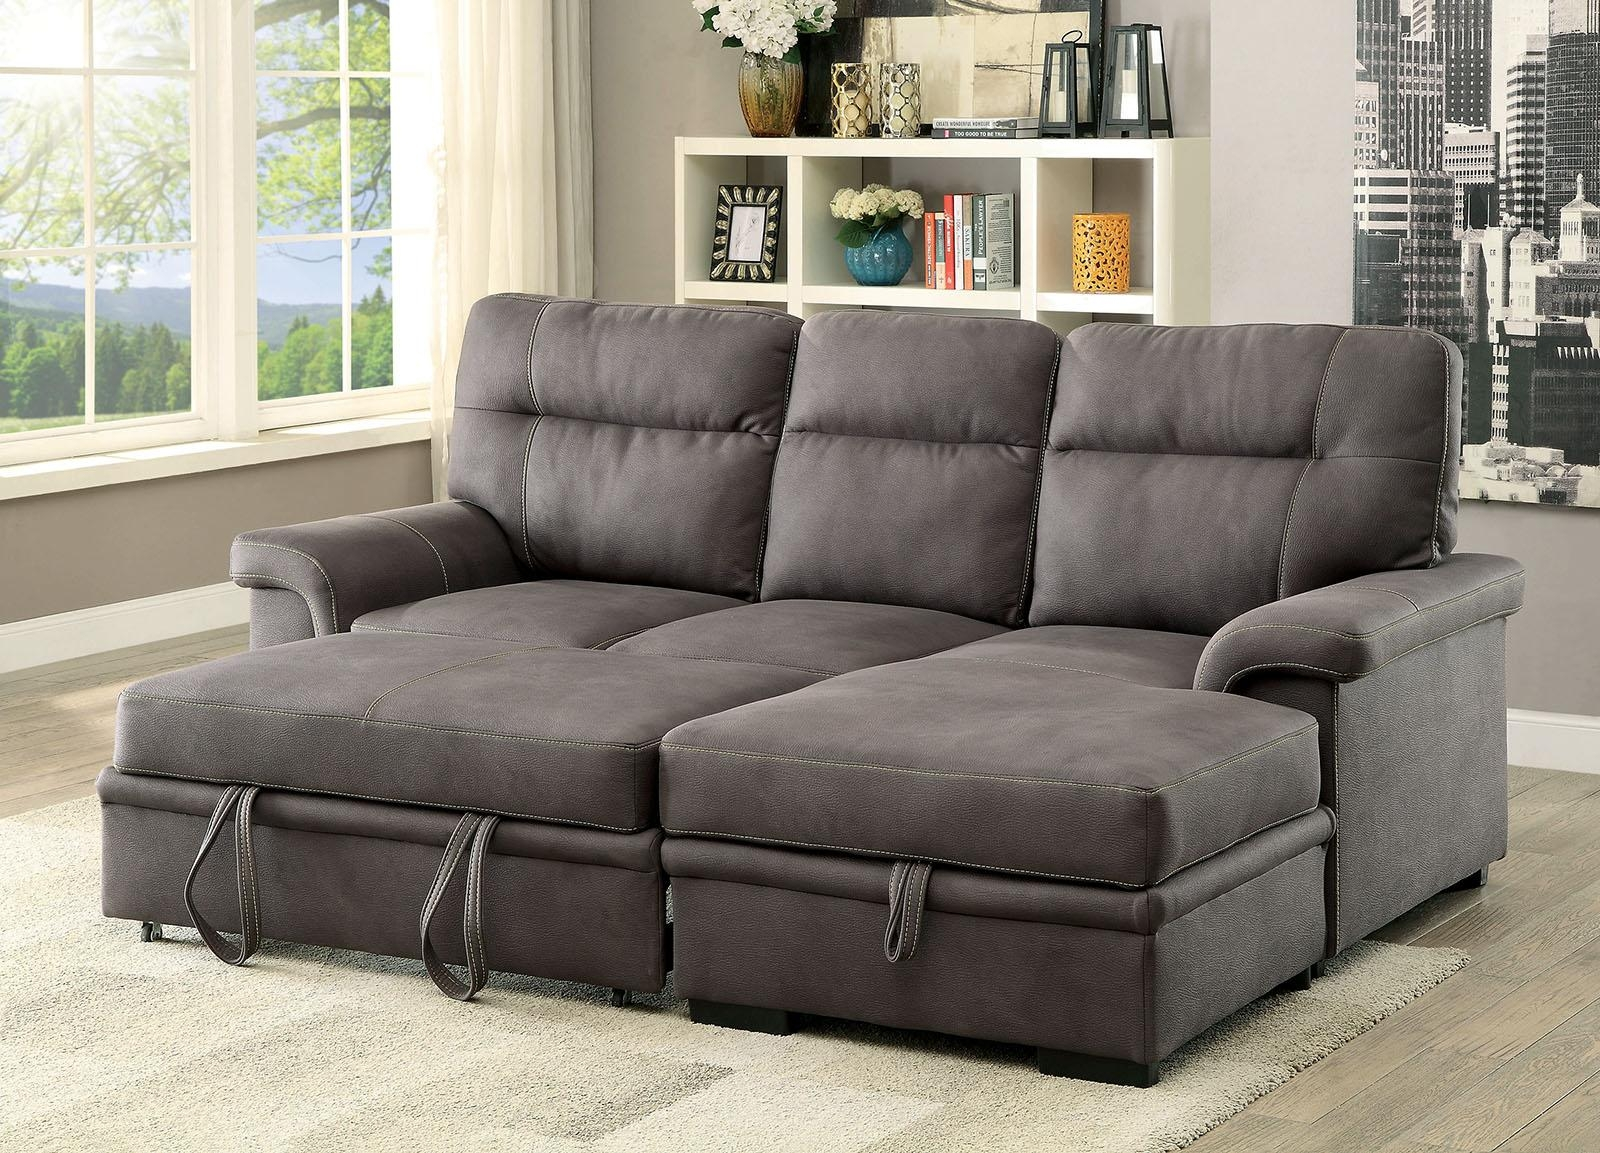 Blaire Graphite Fabric Plush Sectional W/ Pull Out Bed & Storage With Pull Out Sectional (Image 5 of 20)